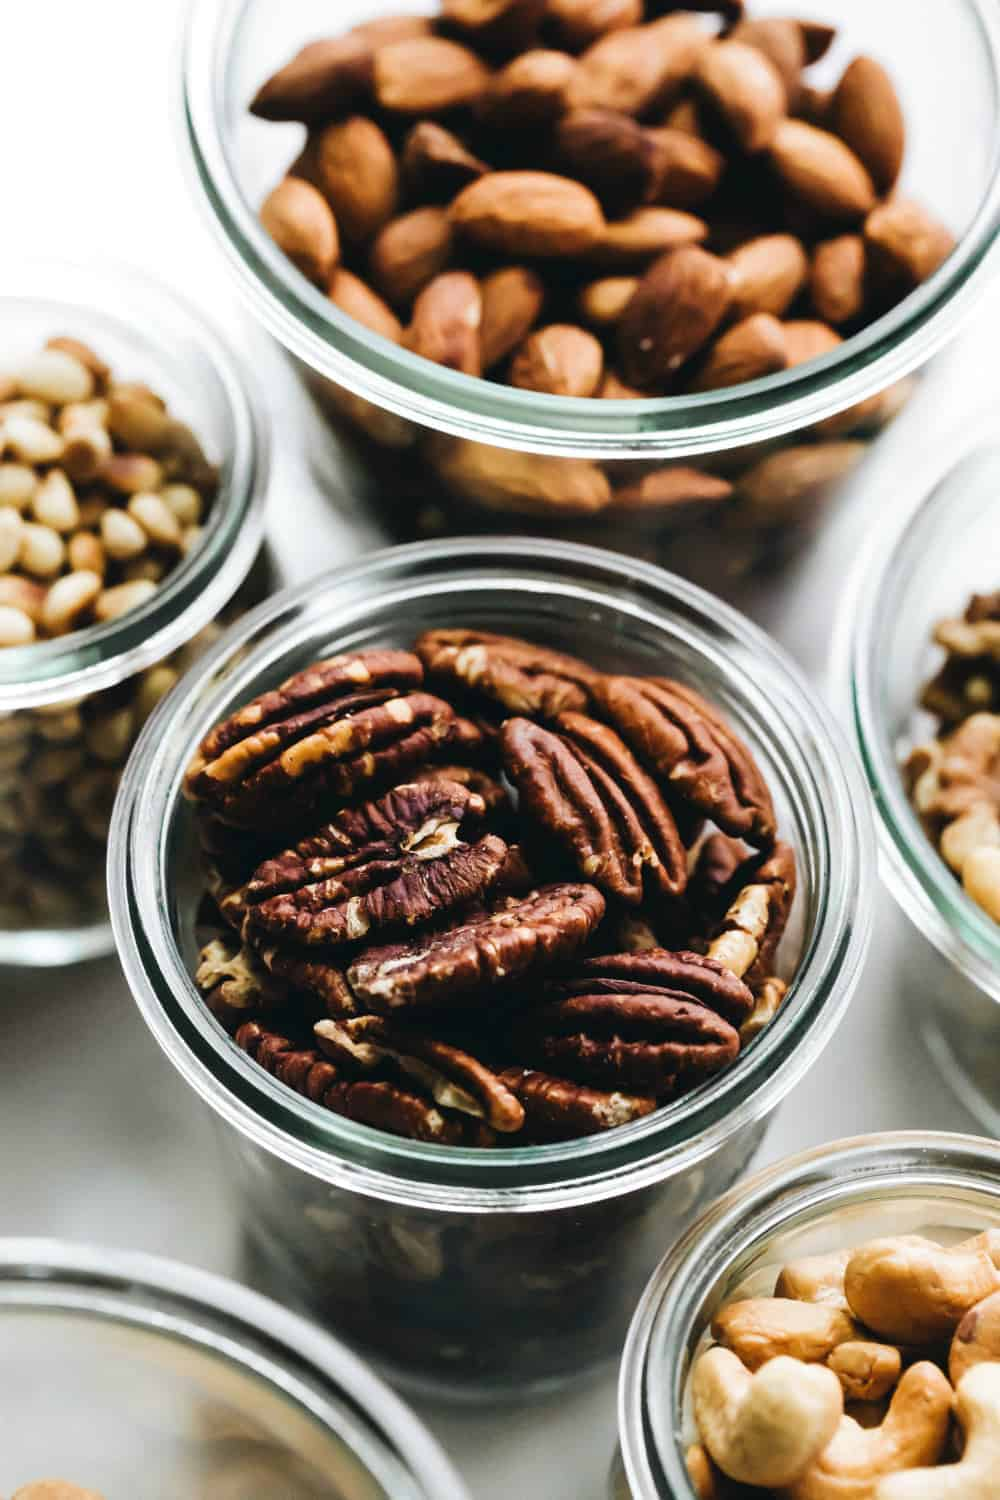 Toasted pecans in a glass jar